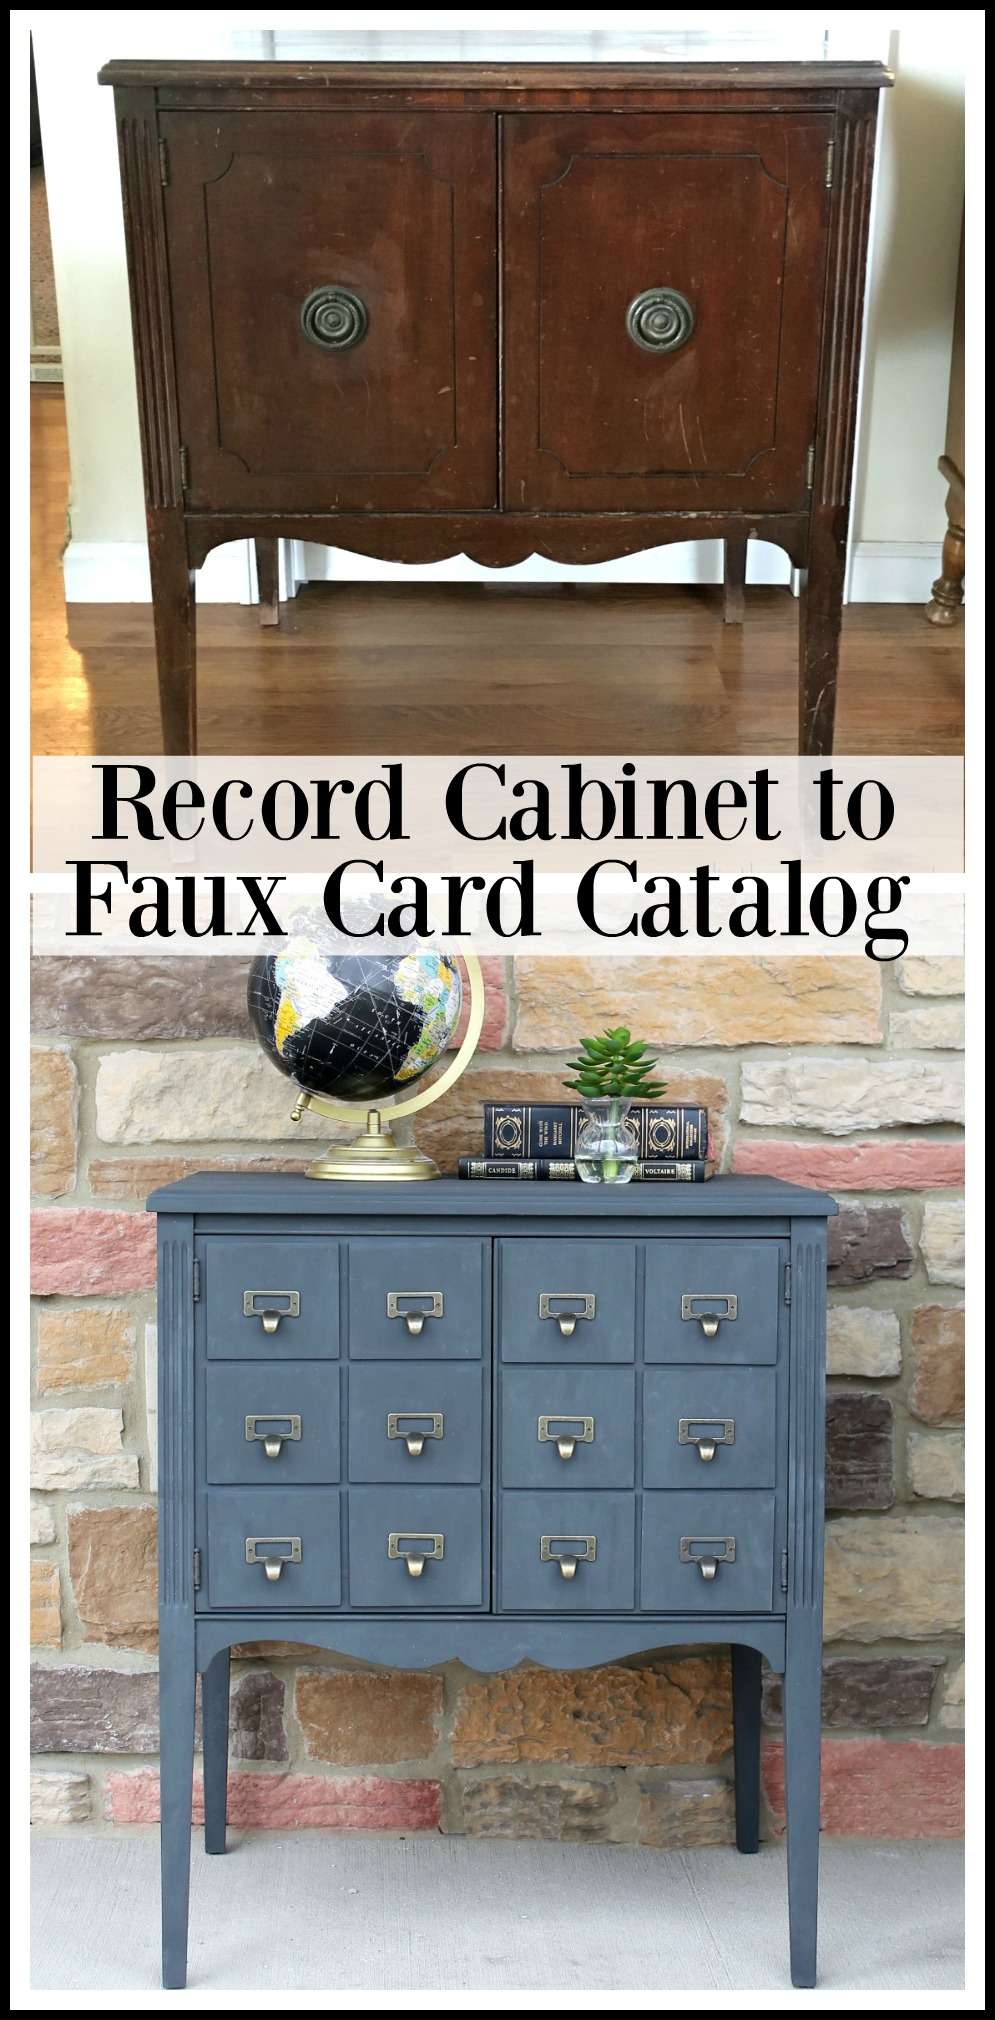 Upcycled record cabinet to faux card catalog - Girl in the Garage